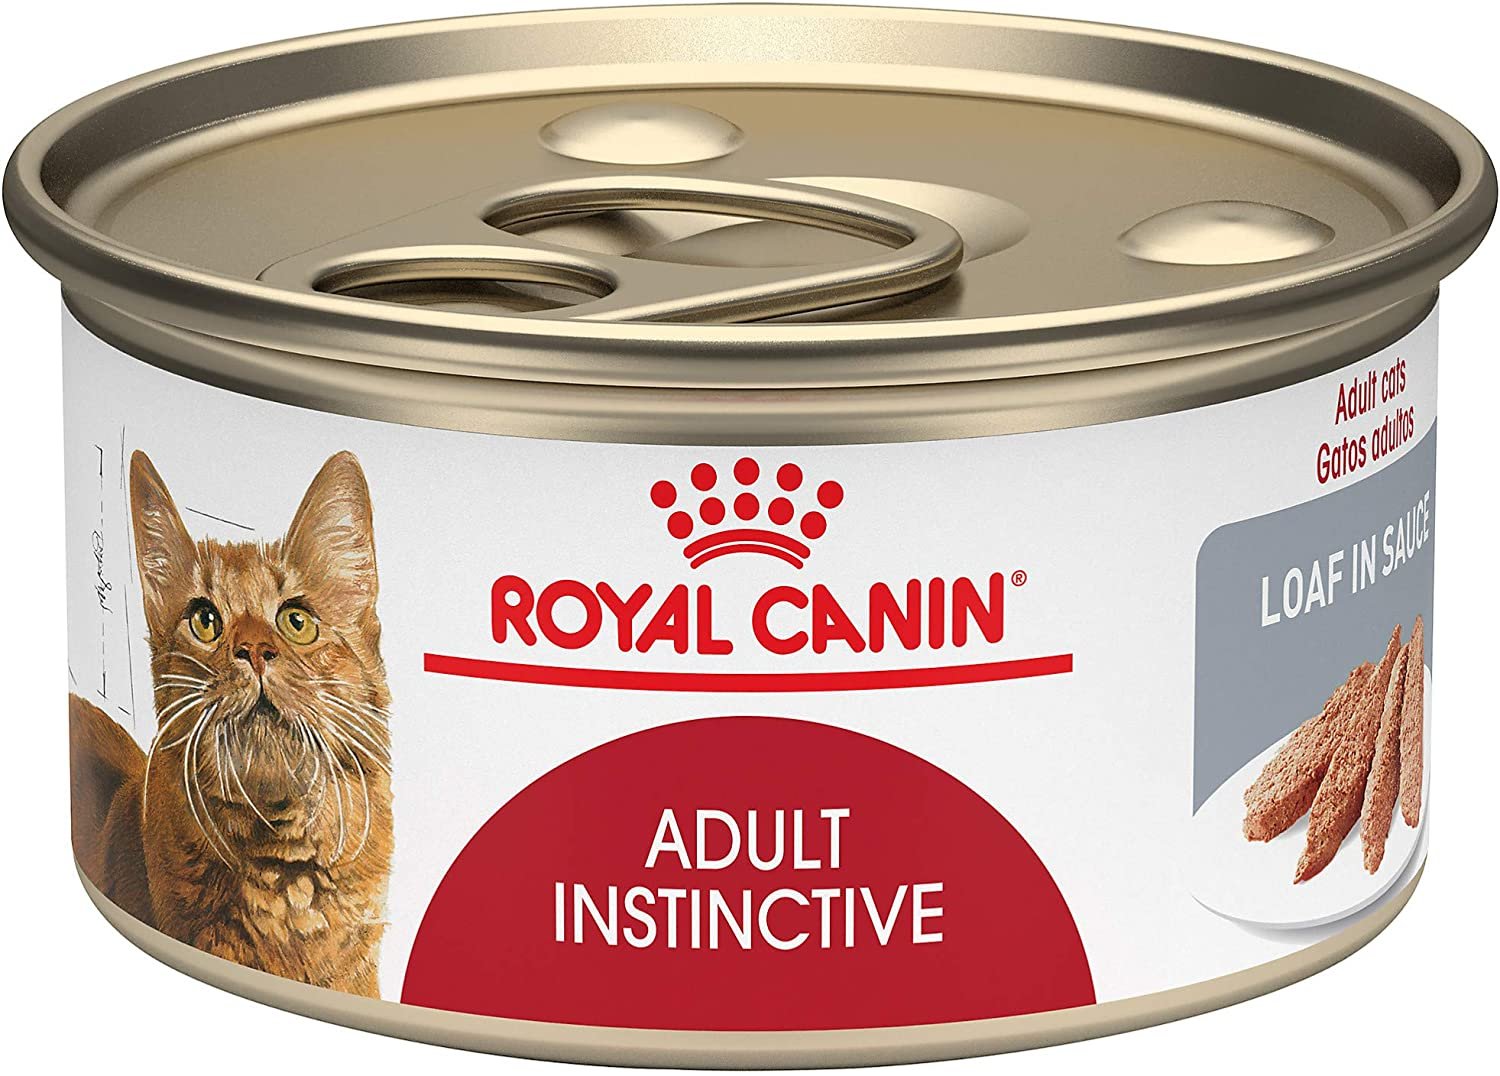 Royal Canin Feline Health Nutrition Adult Instinctive Loaf In Sauce Canned Cat Food, 3 oz Can (Case of 24)